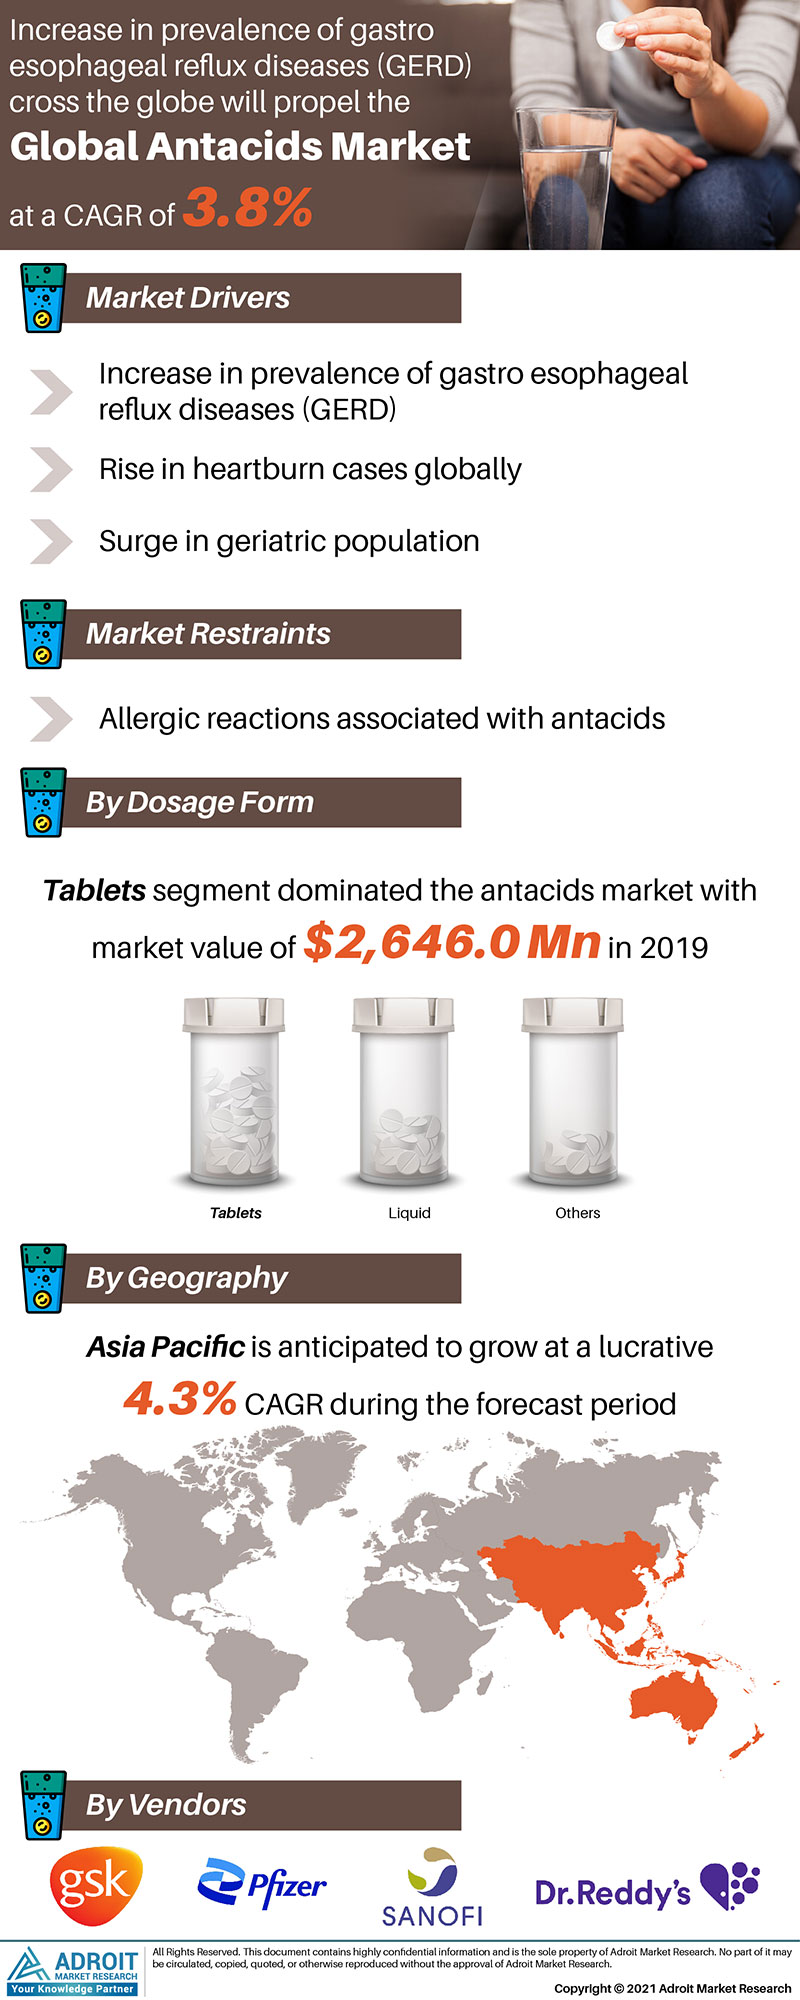 Antacids Market Size 2017 By Application, Product, Region and Forecast 2019 to 2025